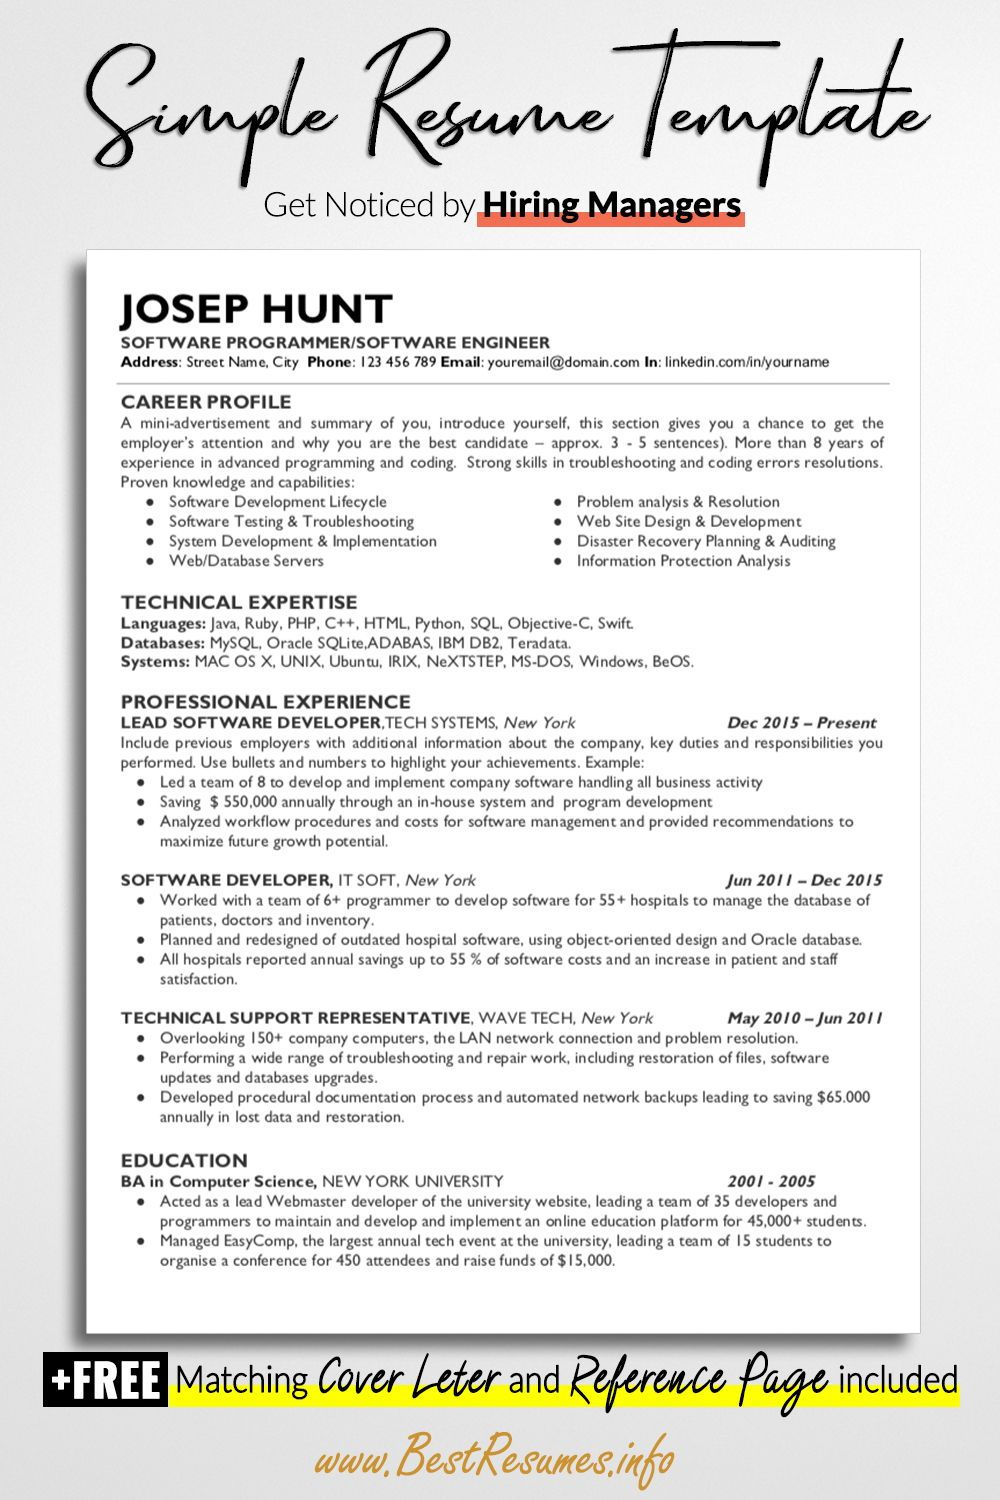 Technical Resume Template Joseph Hunt Bestresumes Info One Page Resume Template Teacher Resume Template Business Resume Template